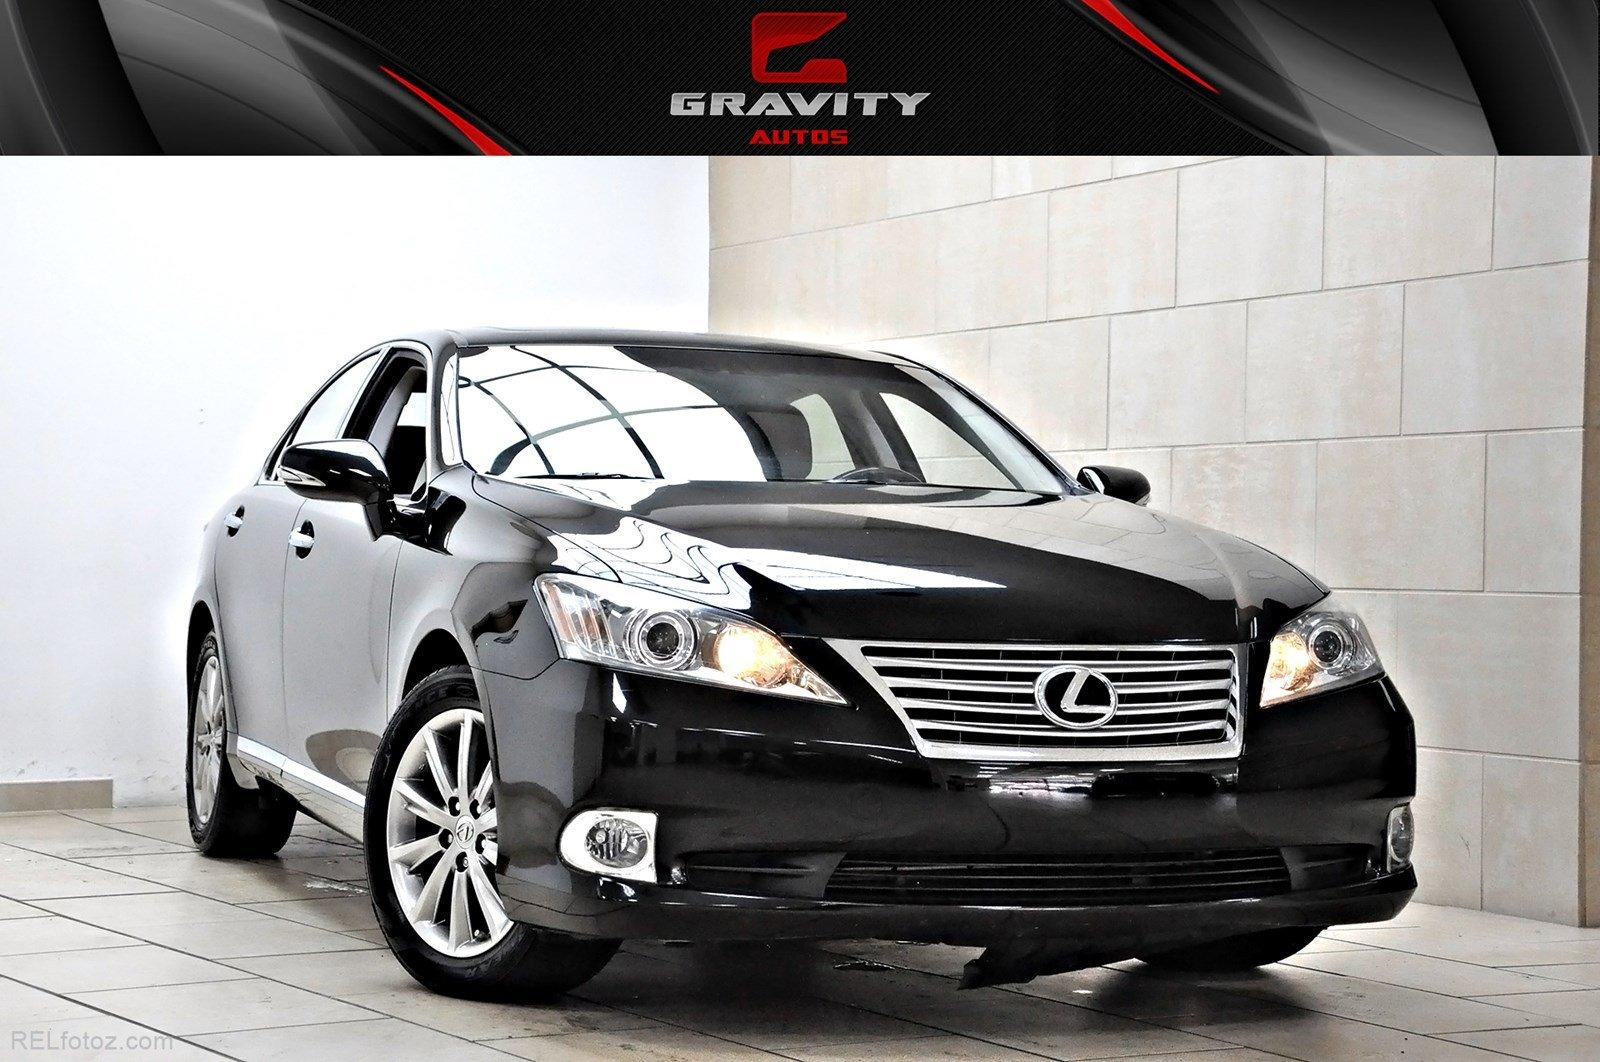 2012 lexus es 350 stock 484527 for sale near sandy springs ga ga lexus dealer. Black Bedroom Furniture Sets. Home Design Ideas